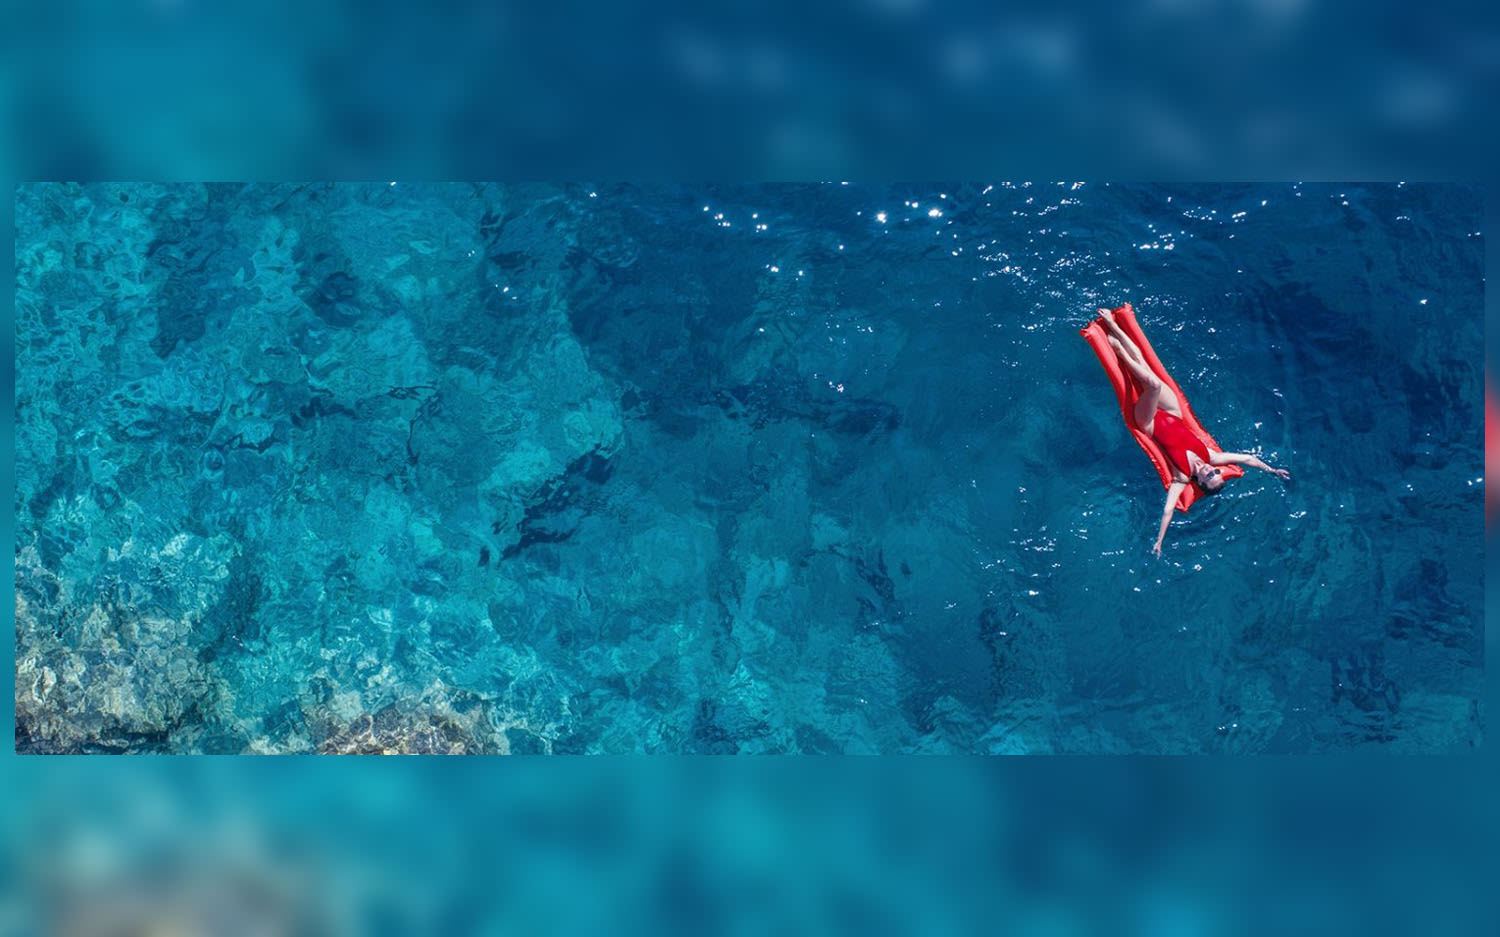 A person on a red lilo floating on a blue sea